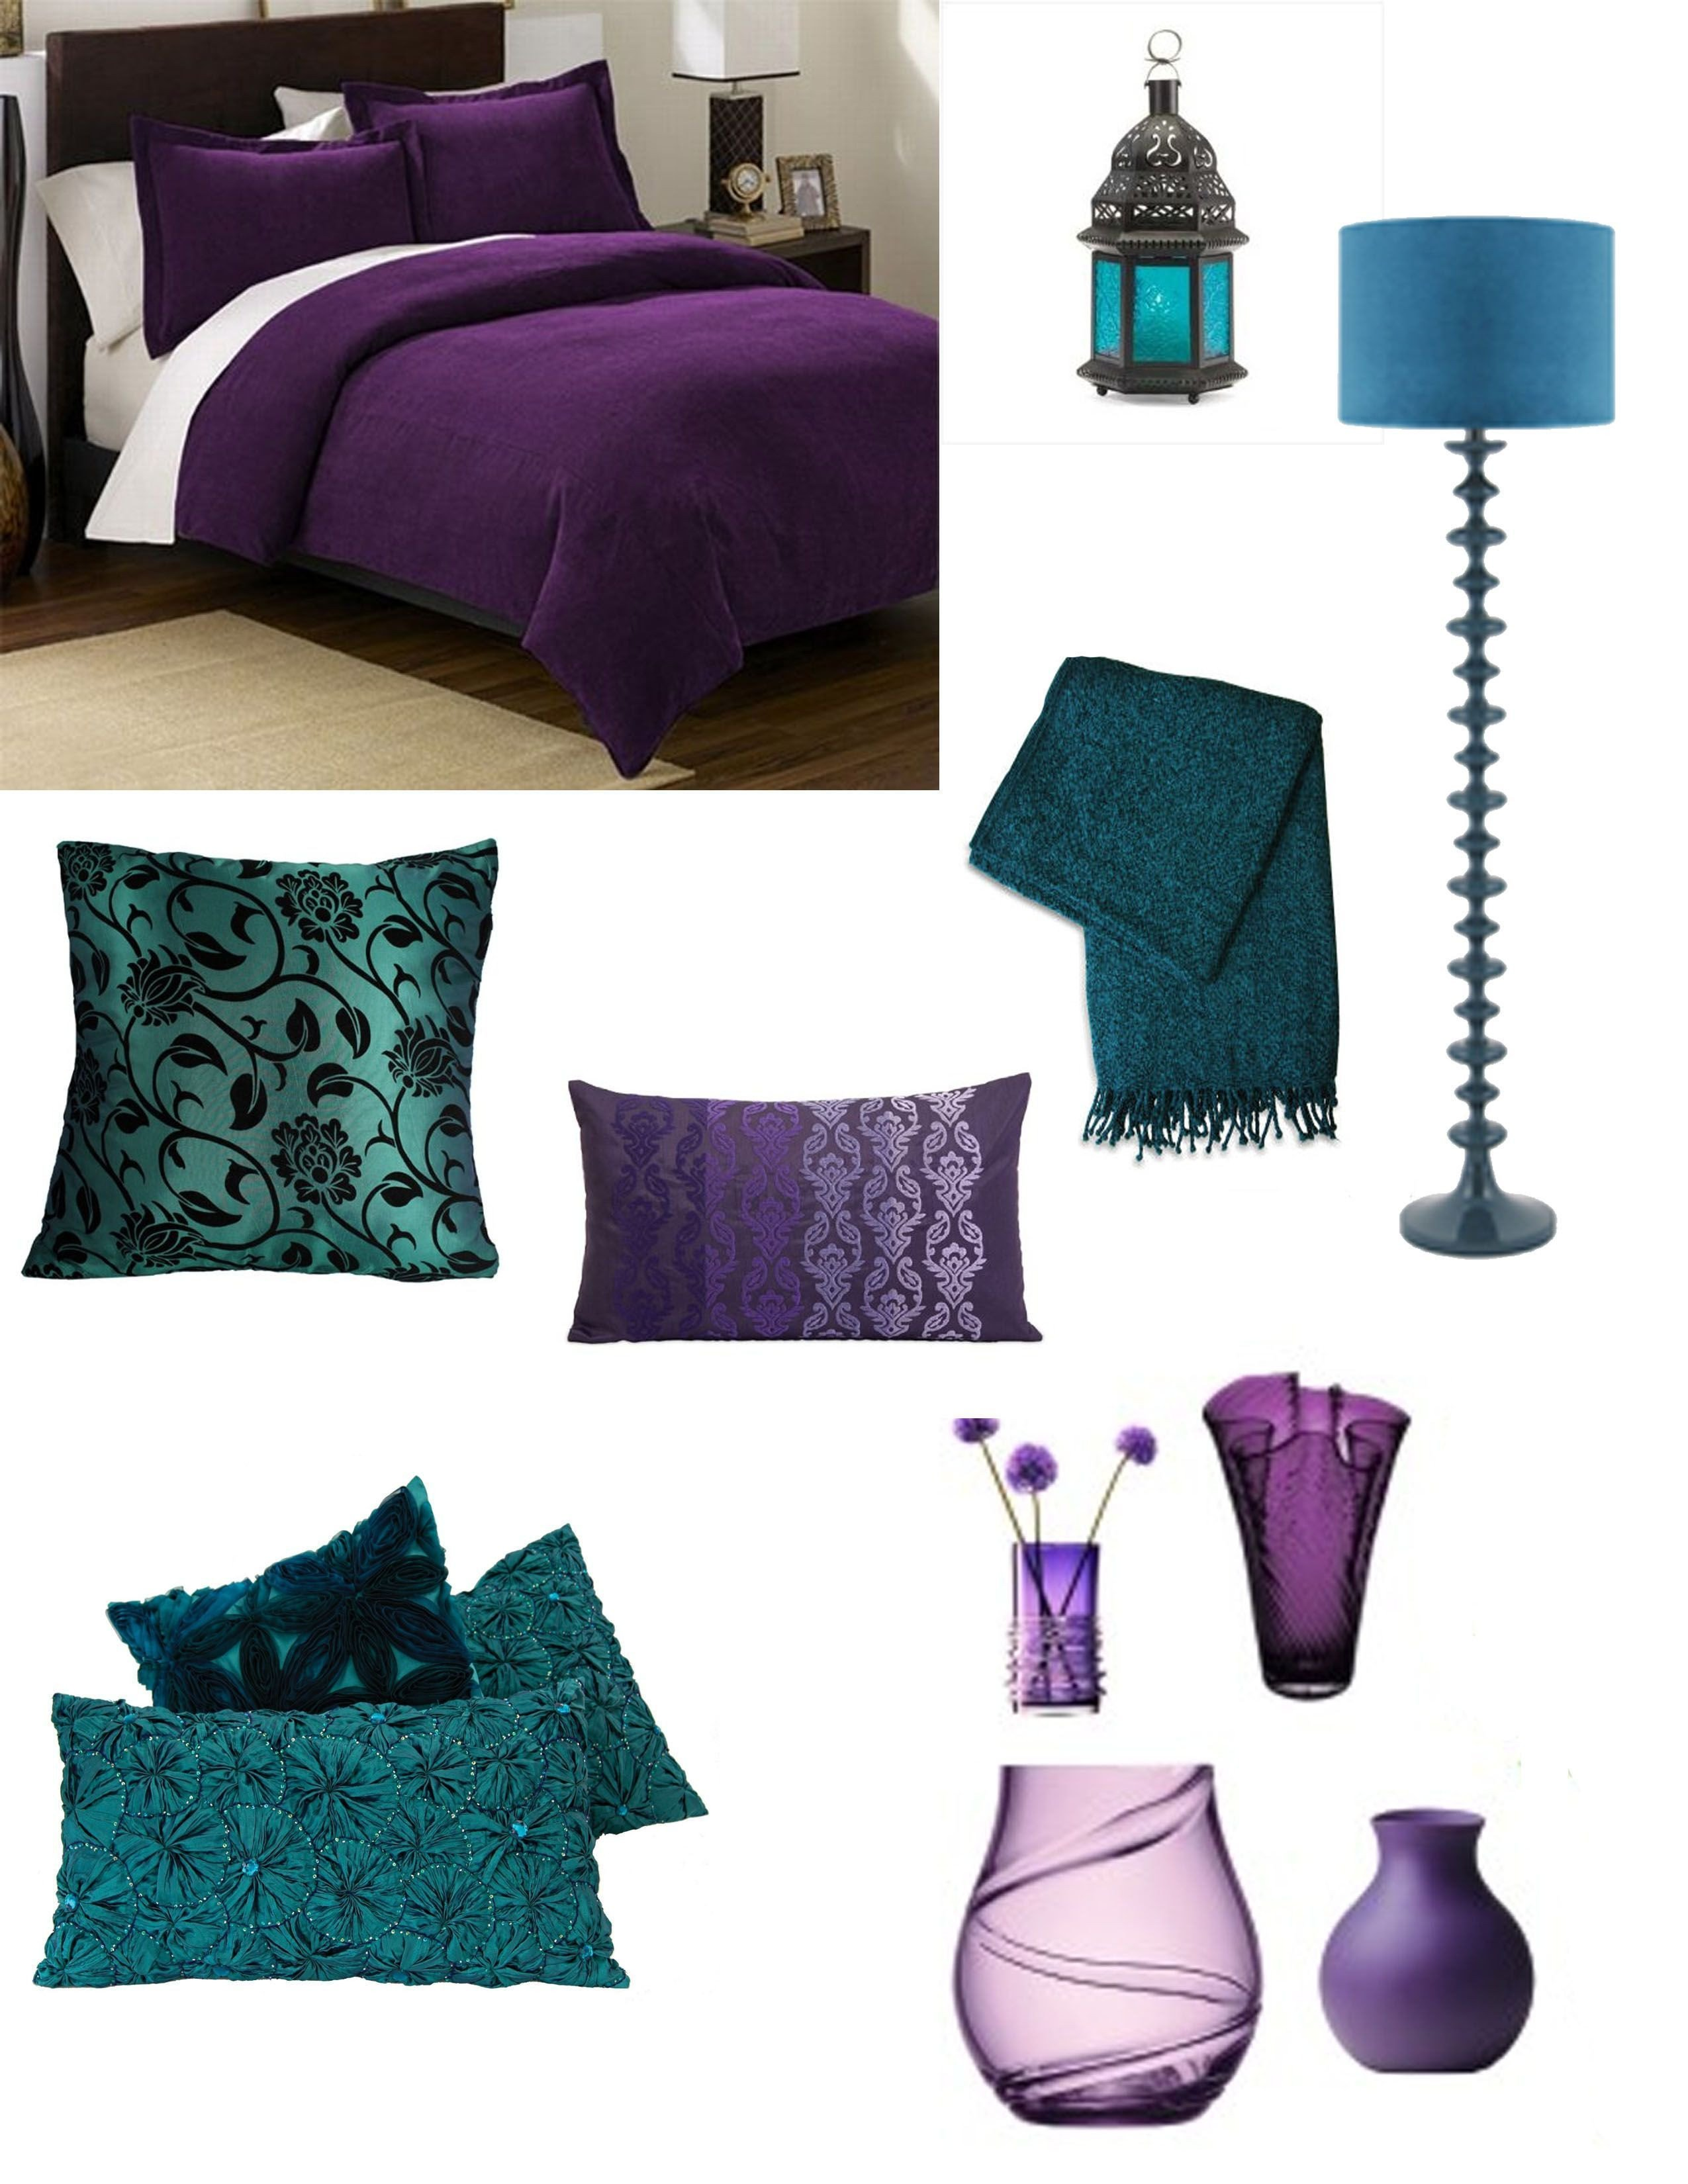 Purple and Teal Bedroom Fresh Purple and Teal Bedroom Needs some Black and Maybe A Red